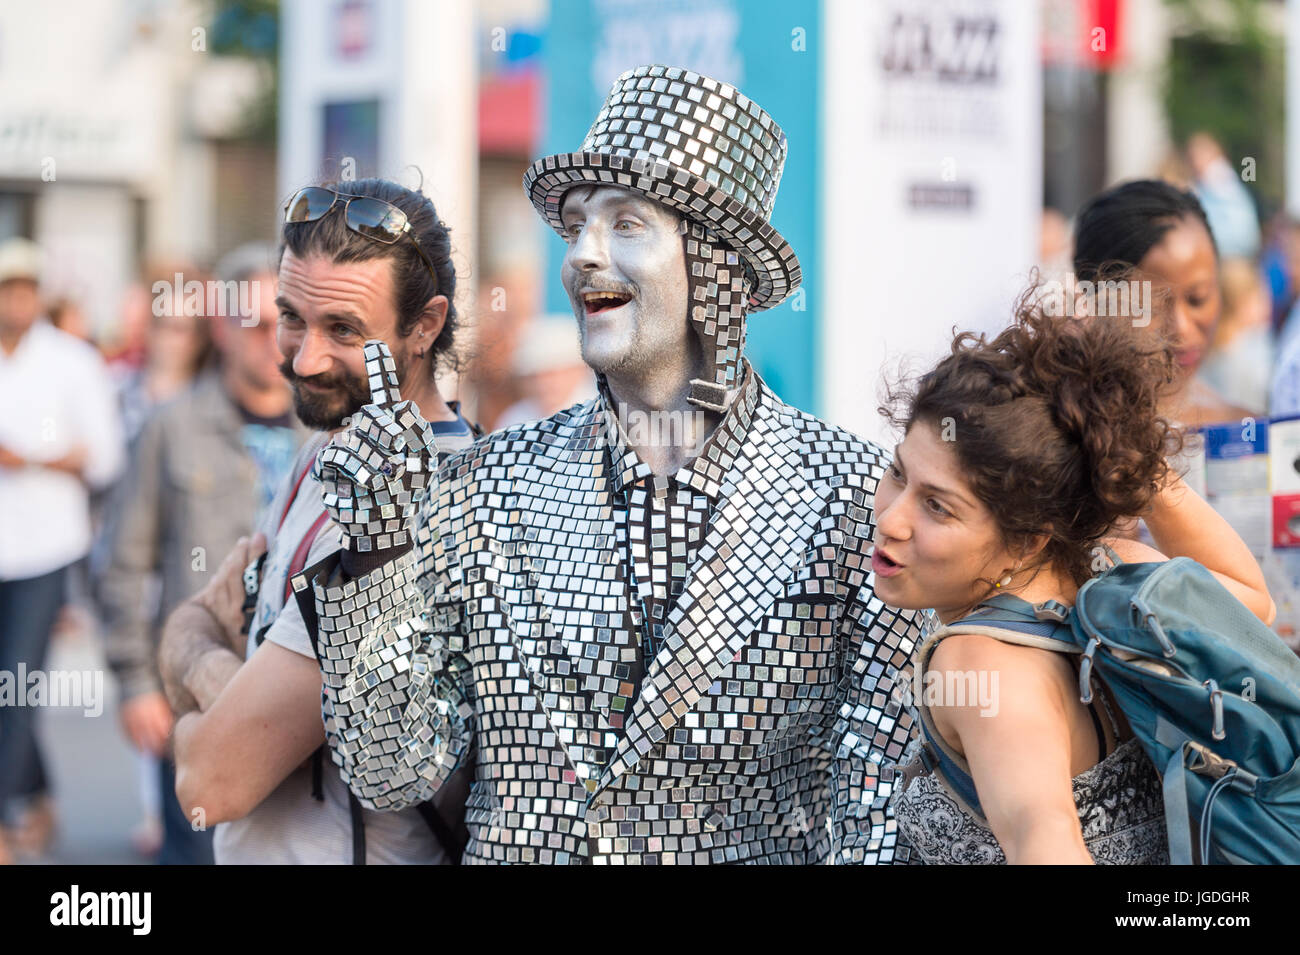 Mime artist posing with two people at Montreal Jazz Festival - Stock Image